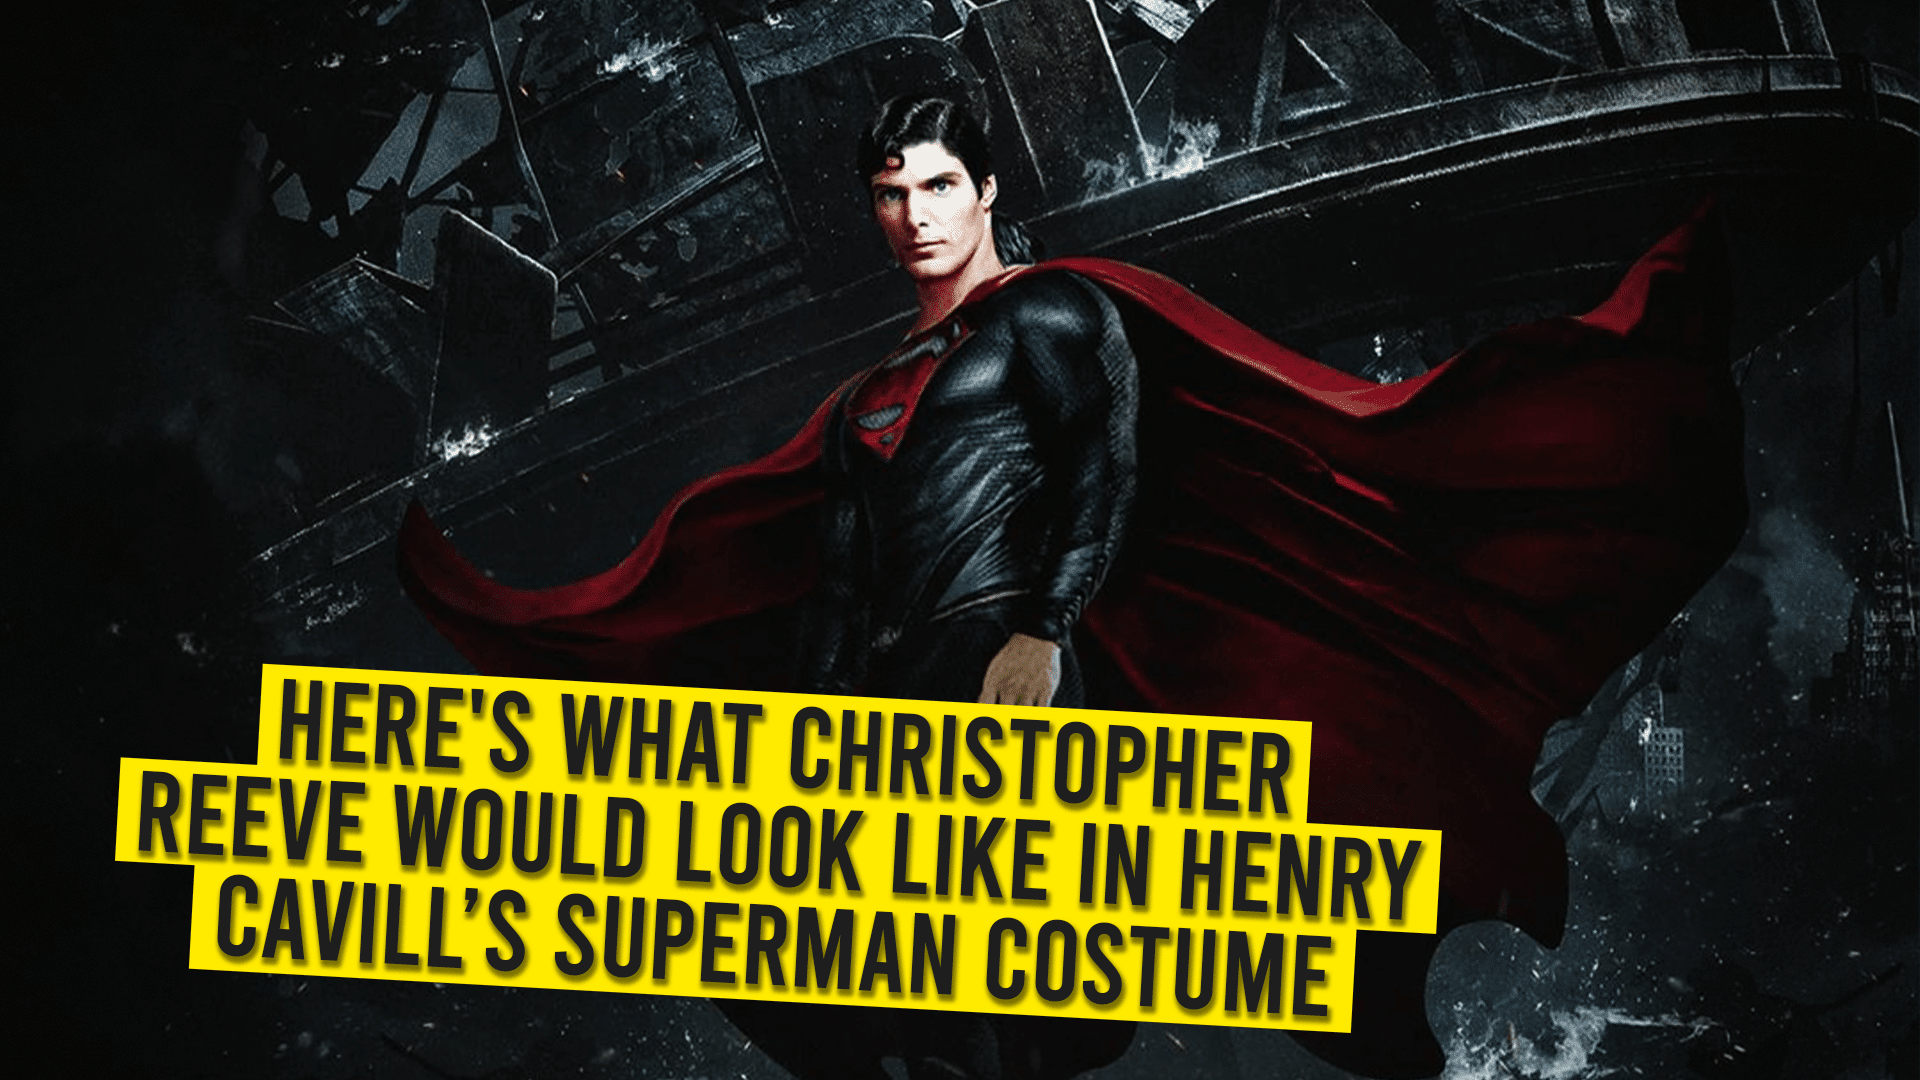 Christopher Reeve In Henry Cavill's Superman Costume